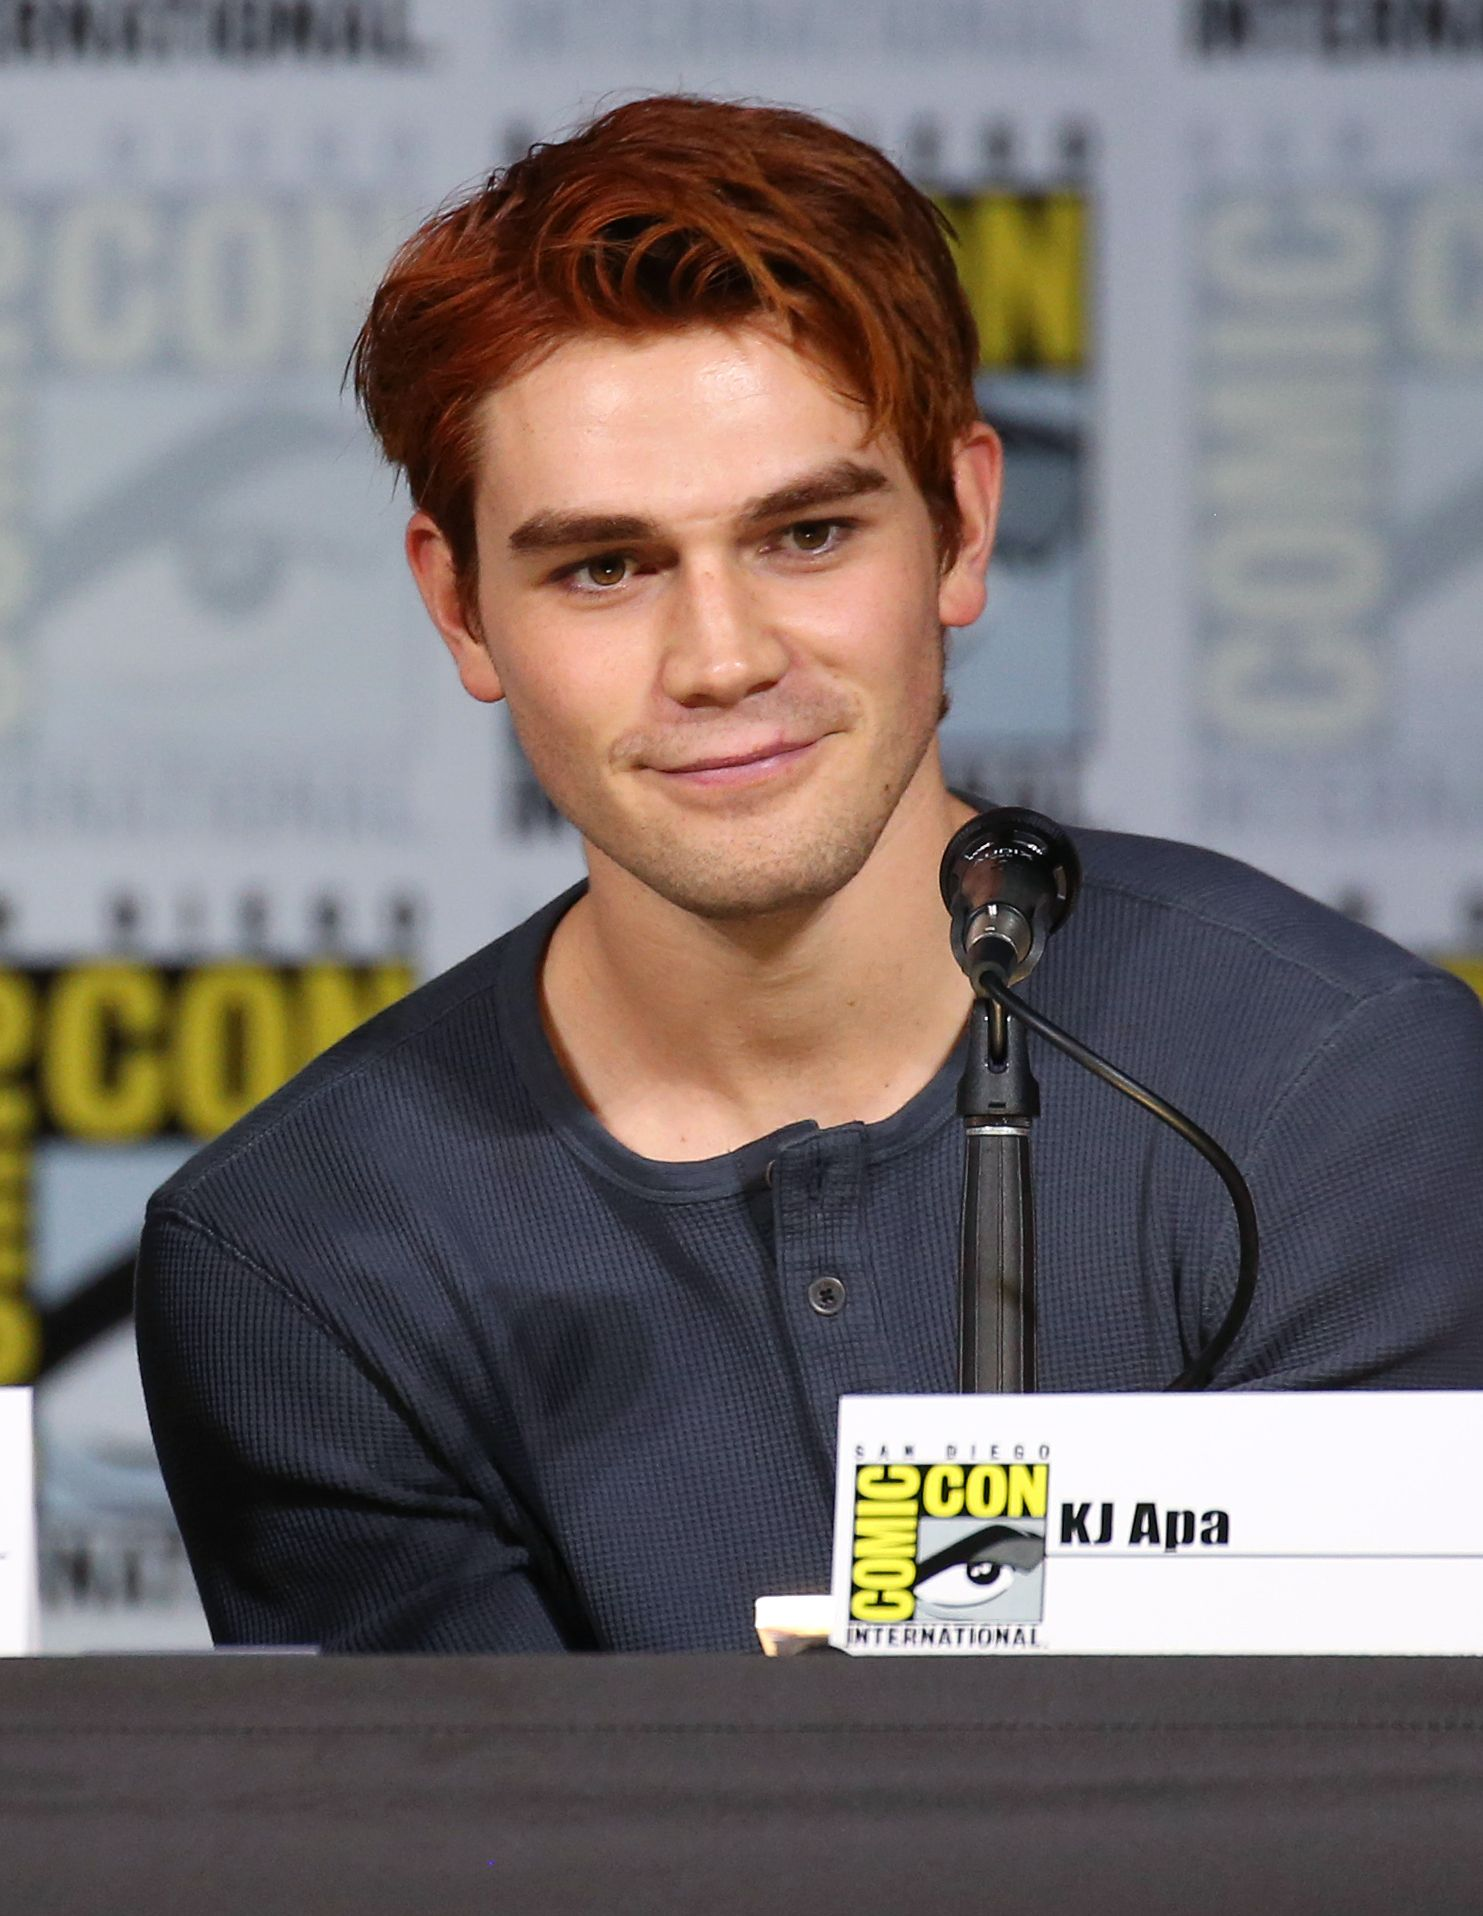 KJ Apa explains why he hasnt vocalized support for BLM